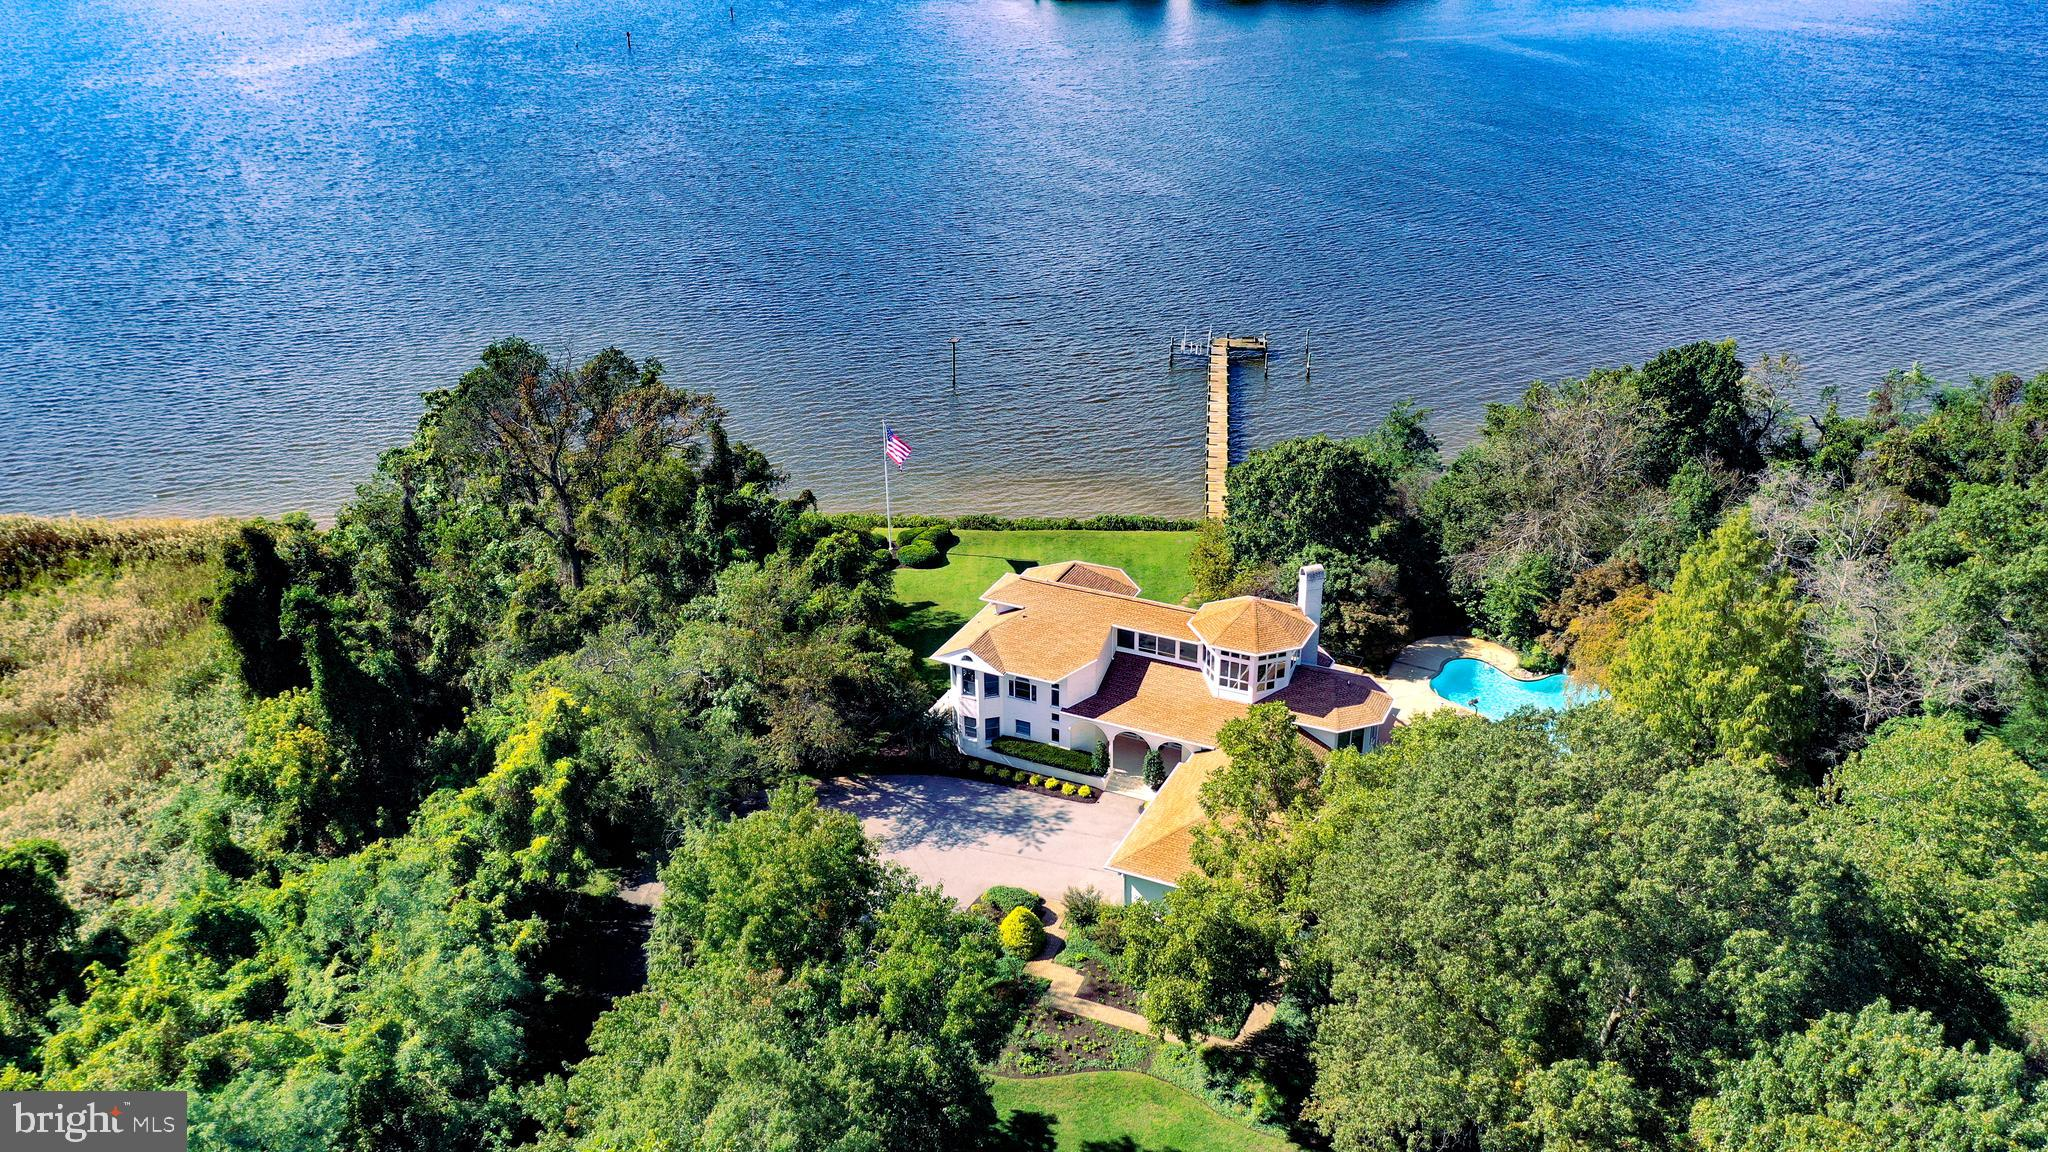 Extraordinary Waterfront Property in Prestigious Bodkin Pointe.  Never offered before and built by the developer of Bodkin Pointe!  Don't miss this the opportunity to have your very own luxury Escape! Private gated Driveway to 10 + Acres of resort style living with amazing elevated Water views from Main Residence. Waterfront Owner's Suite on private floor with elevator accessible, sitting room and balcony.  Third Floor Glass lookout loft  with 360 degree views, balcony and wet bar for waterfront happy Hours. Heated pool with waterslide, waterfall, hot tub & attached pool house/apartment.  3 Story Ceilings height and unobstructed views.  630' of Riparian Waterfrontage, 184 ft. Private pier on protected water with boat lift.  Contemporary floorplan with Stunning Entrance, 2 story kitchen & great room.  Detached Guest House with additional 4 CAR garage &  2K+ square feet of living and entertainment space overlooking professional volleyball courts on premises. Private oasis ready for you to have the time of your life!  Copy and paste this link to view interactive floorplan and 3D Tour.  https://mls.TruPlace.com/property/620/94072/